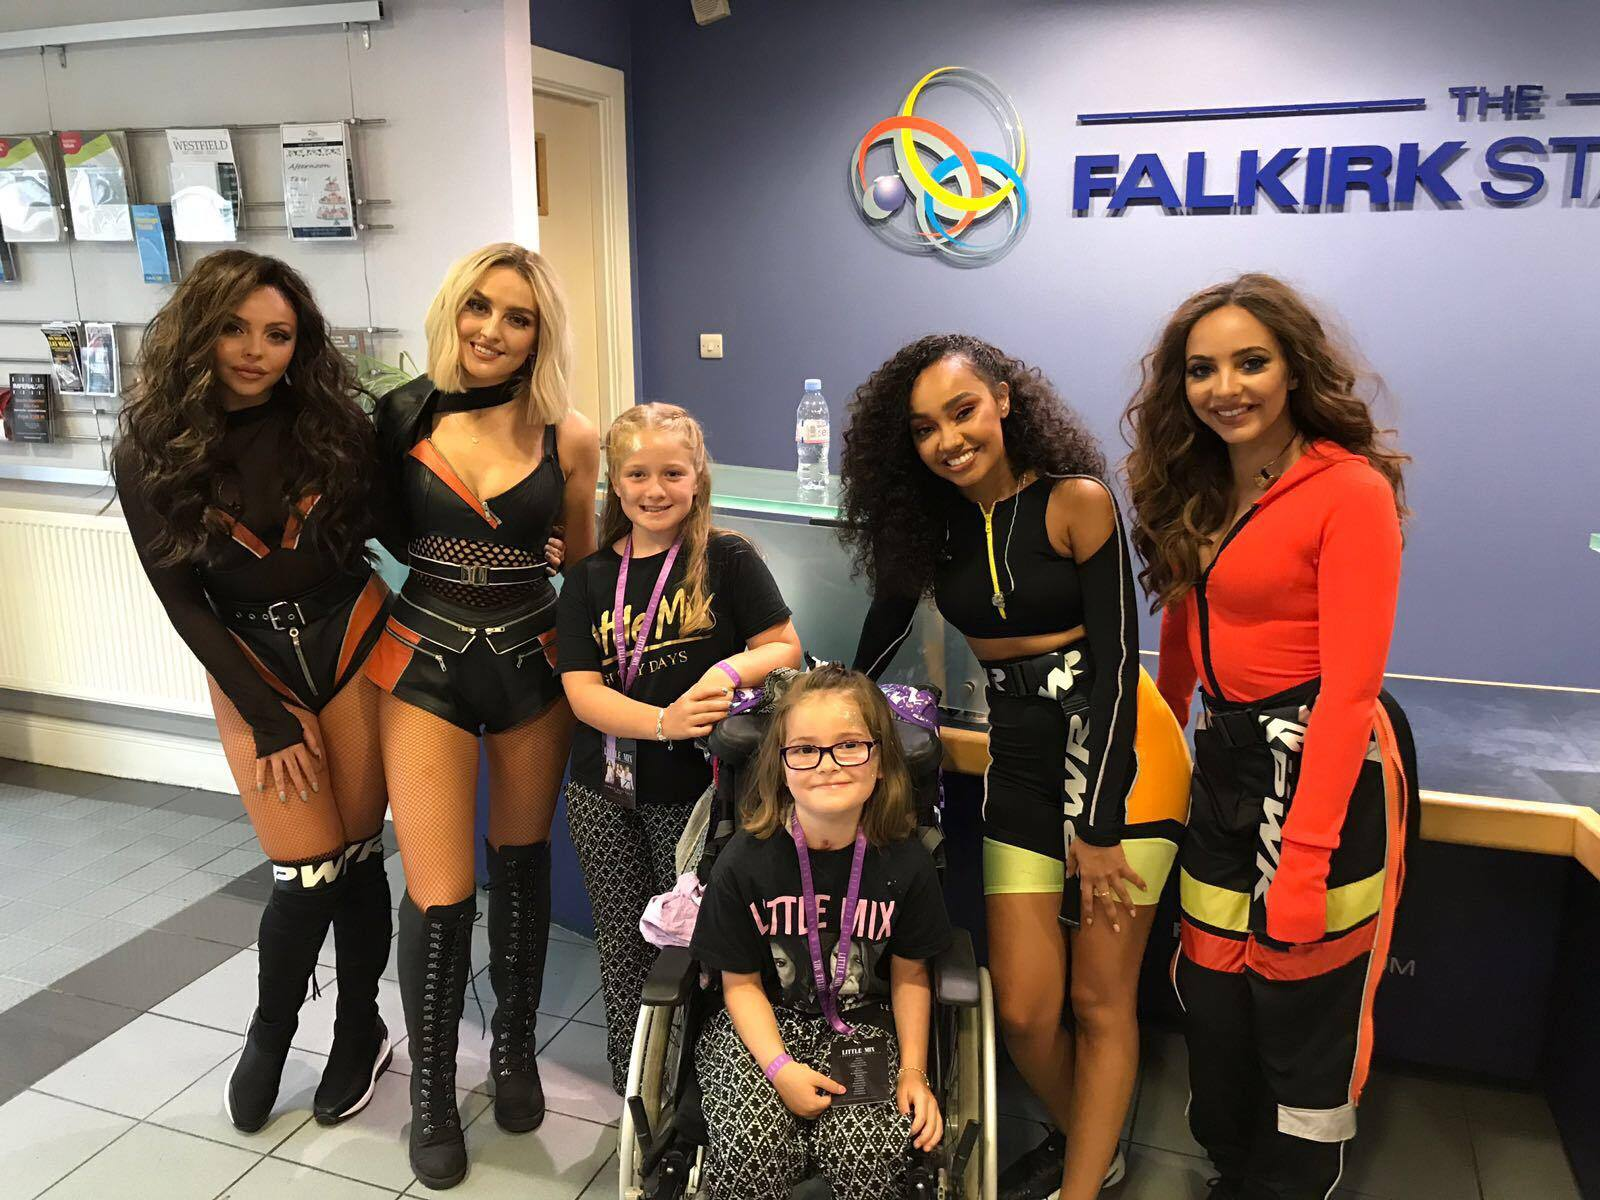 Poppy Smith (seated) and her elder sister Jessica met global superstars Little Mix